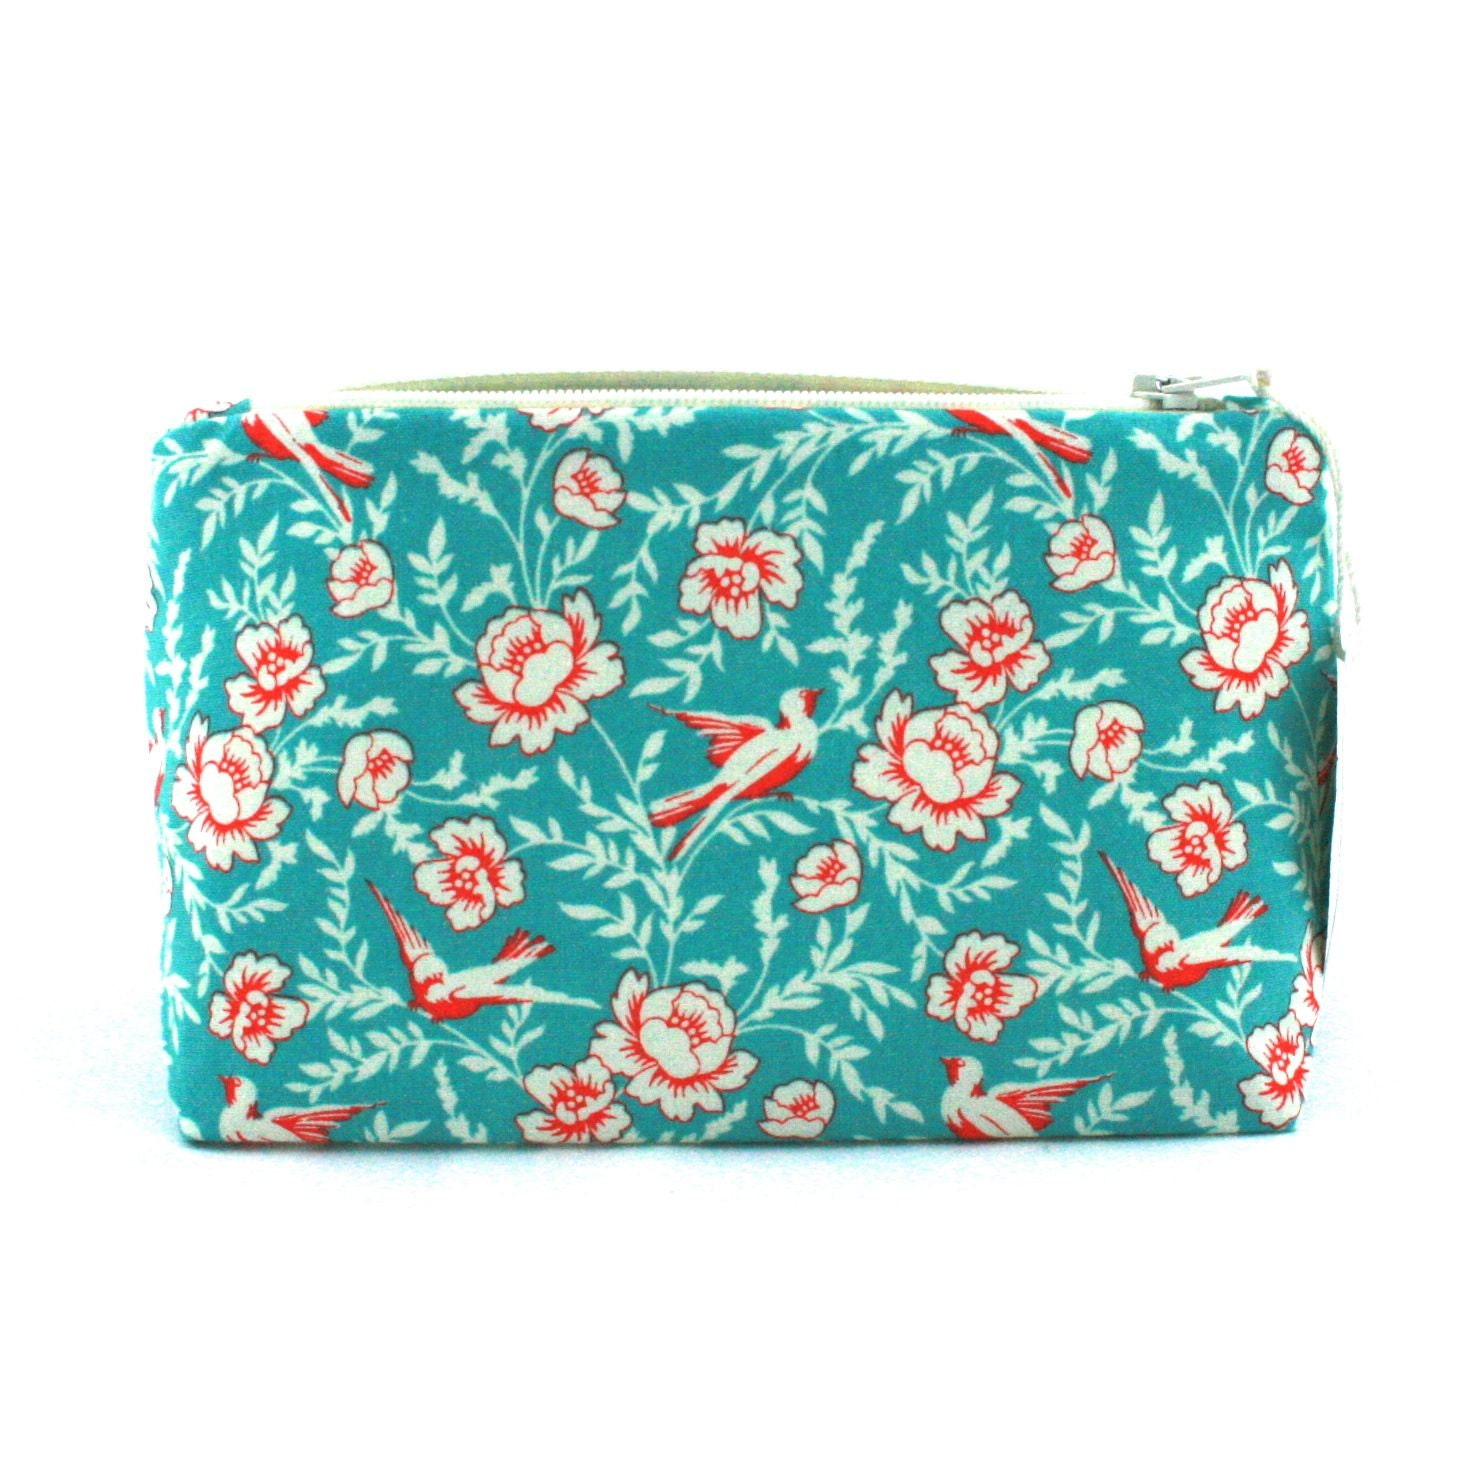 Aqua & Red Bird Makeup Bag / Cosmetic Bag in Retro Swallow Print - Gift for Her , Vintage Bridesmaid Gift, Birthday Gift, Mother's Day - JordaniSarreal